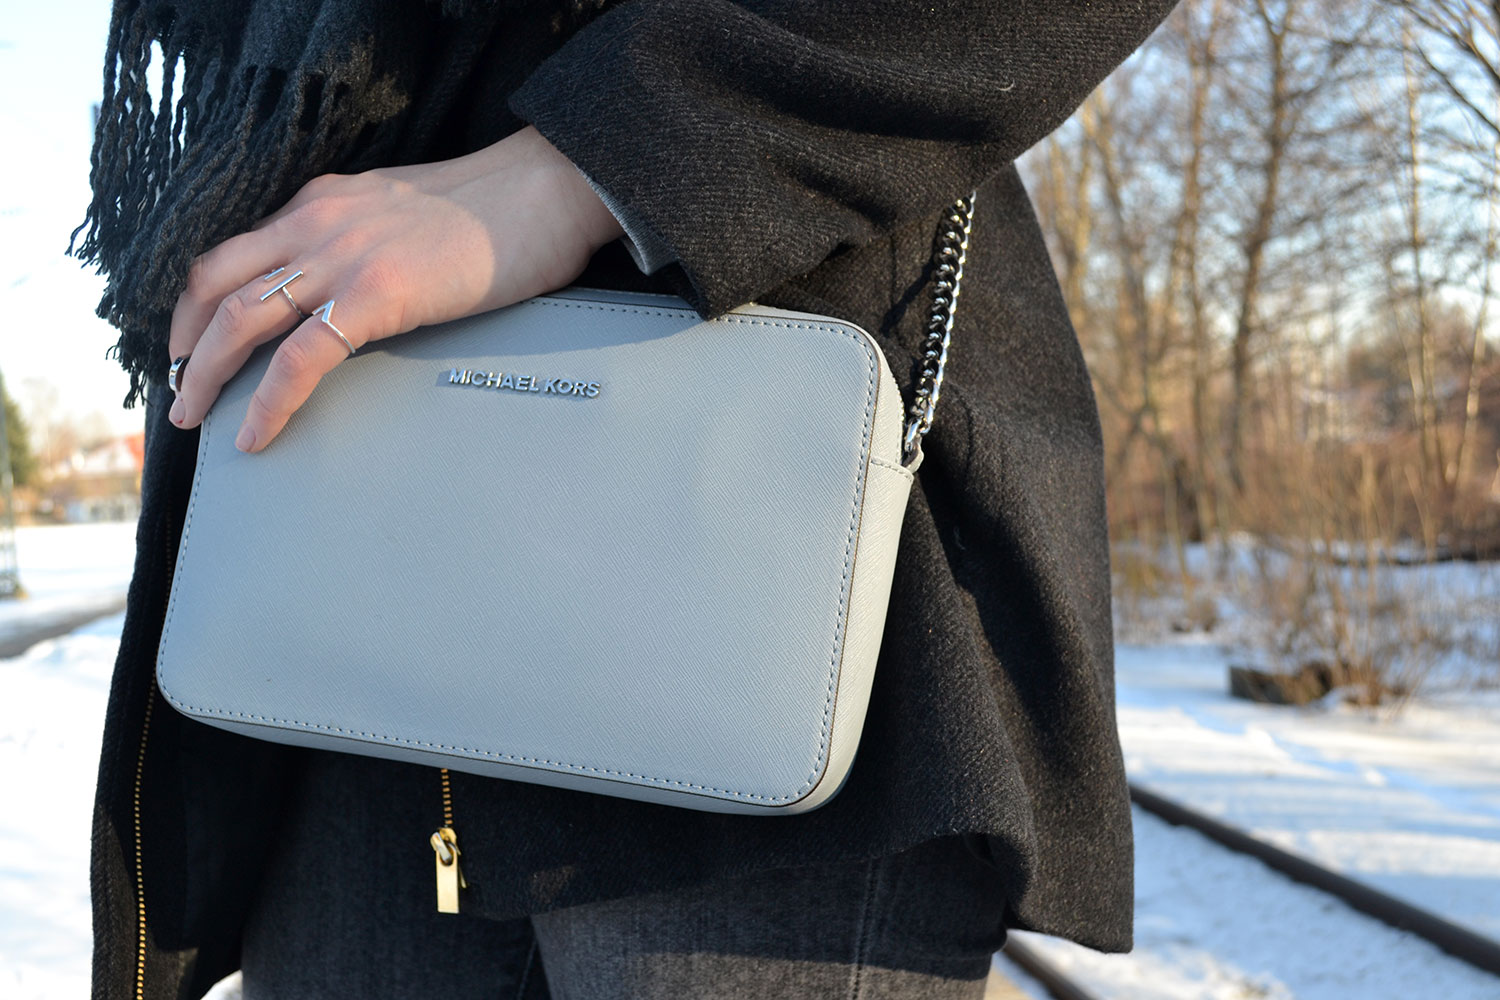 Travel Diary: Ein Wochenende in Rom - Michael Kors Crossbody 1